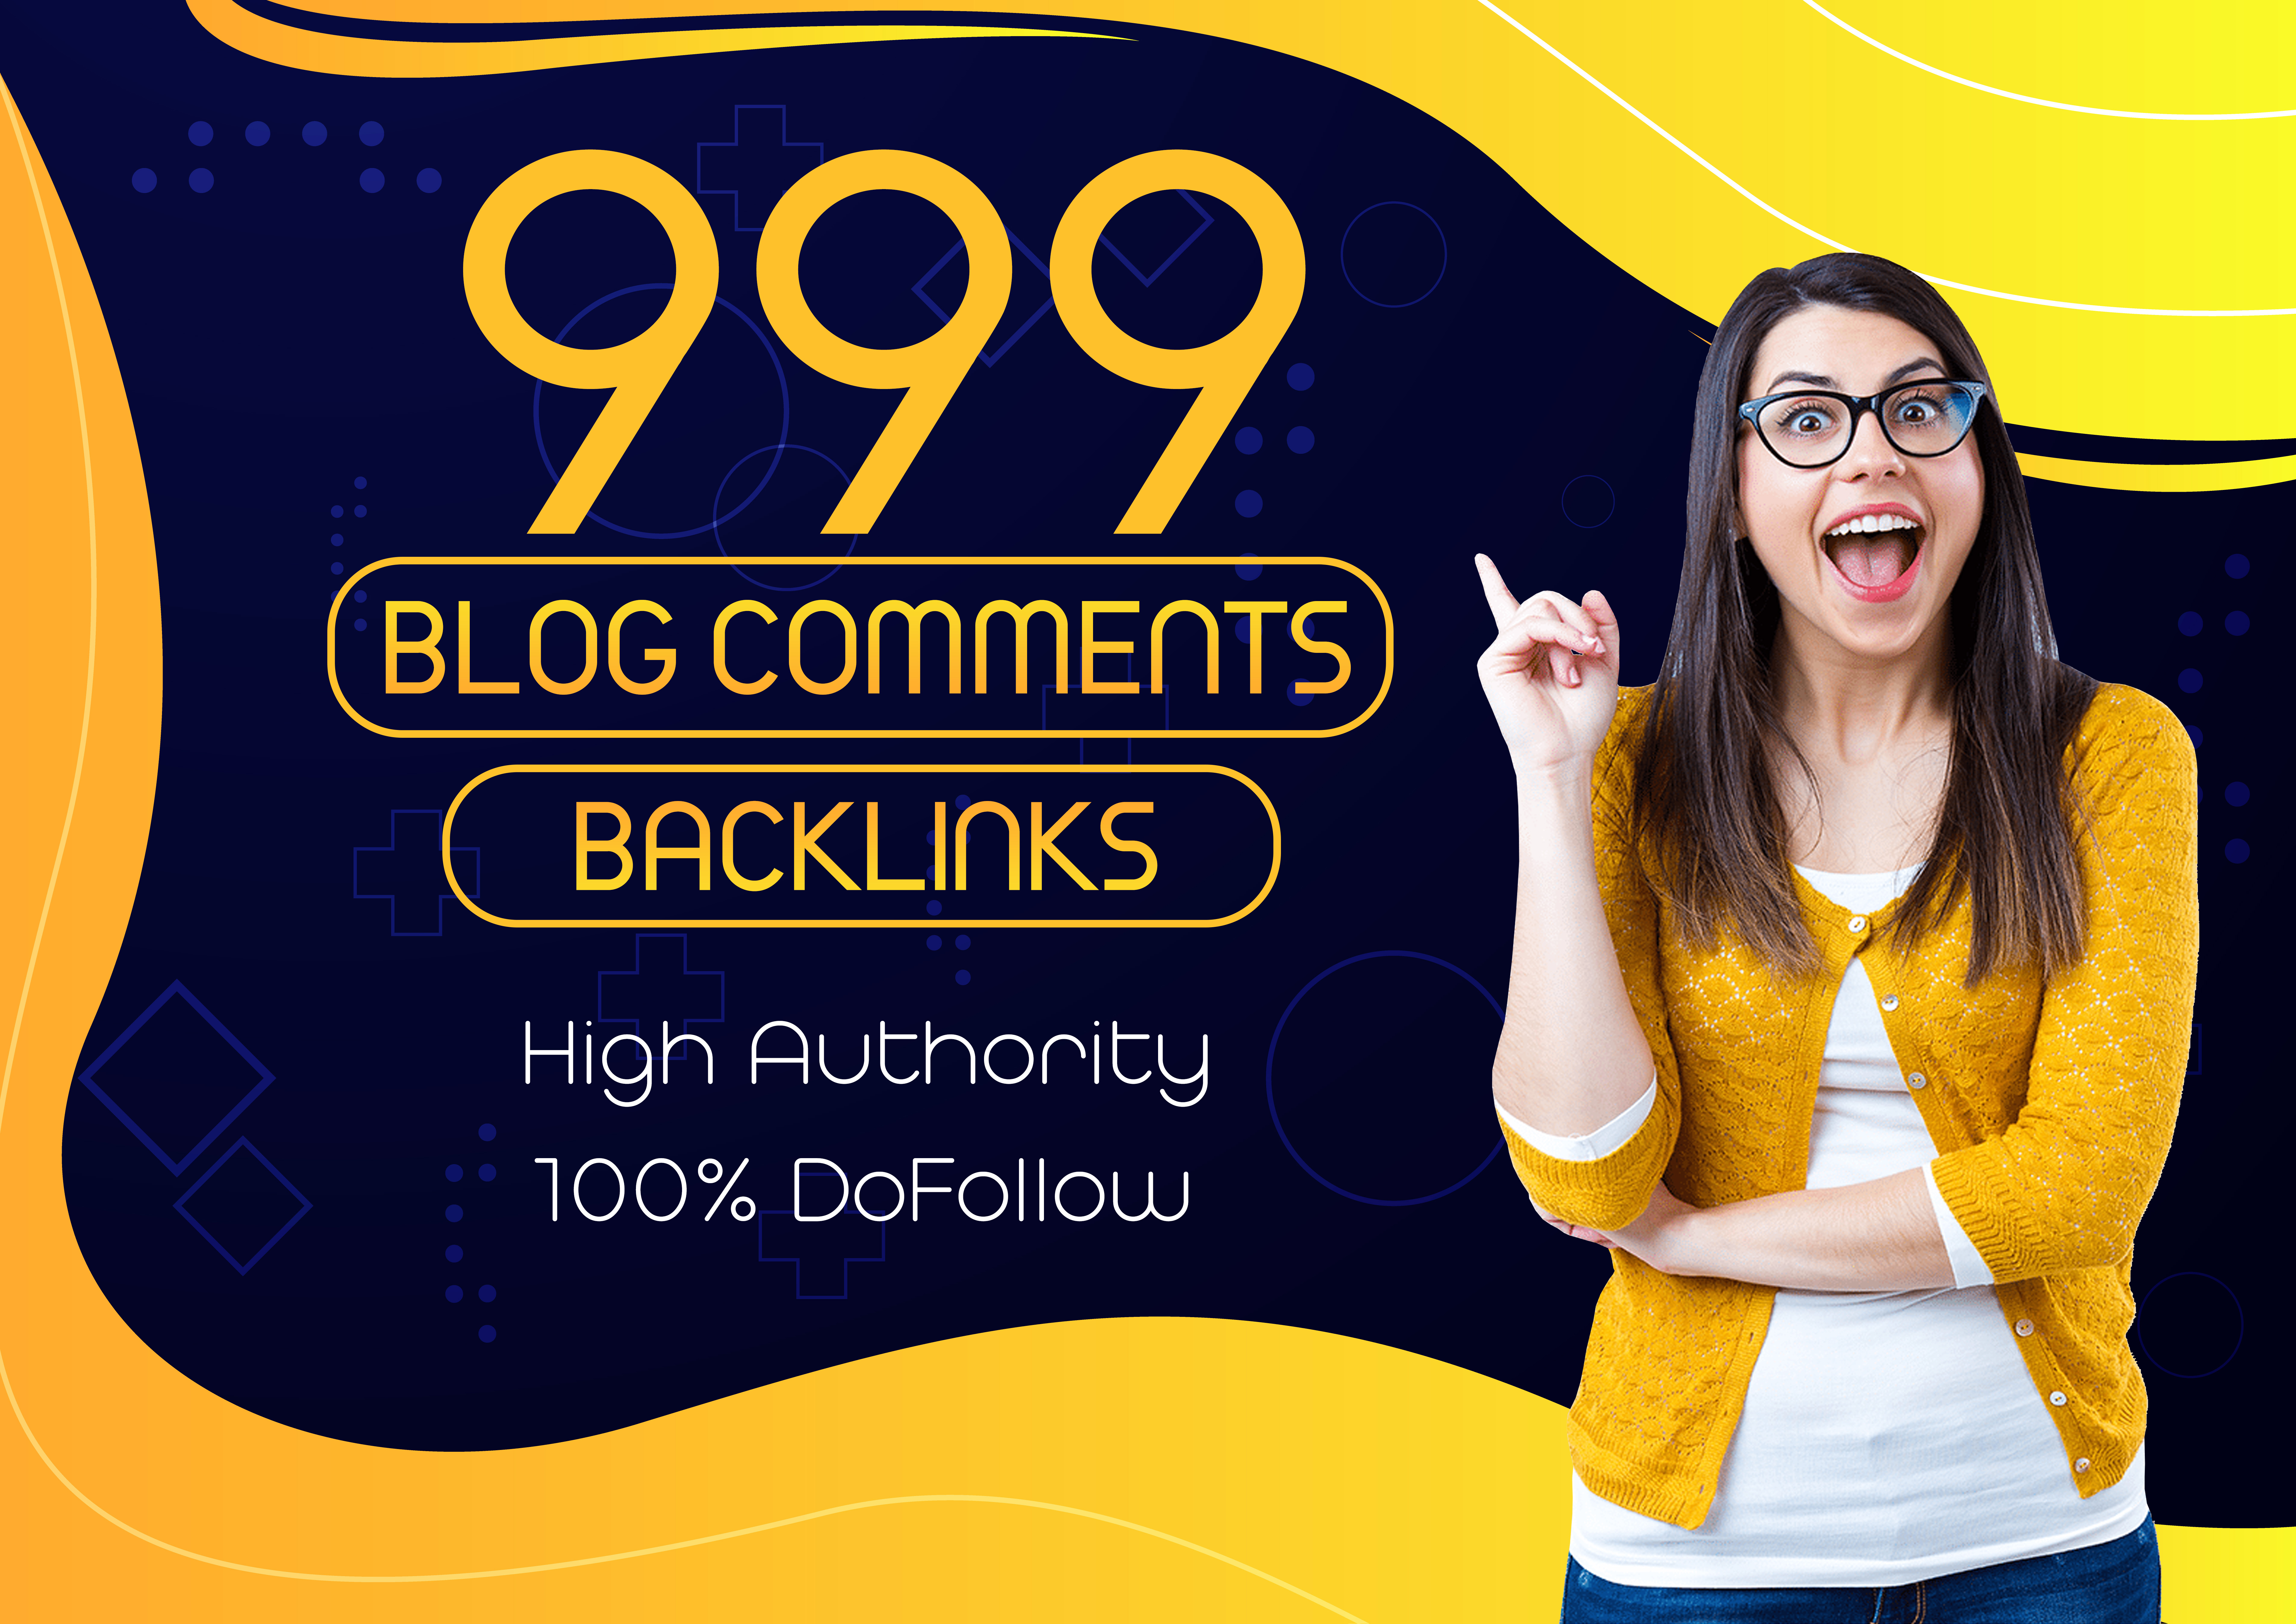 I Will Manually Create 999 High Quality Dofollow Blog Comments High Authority Backlinks